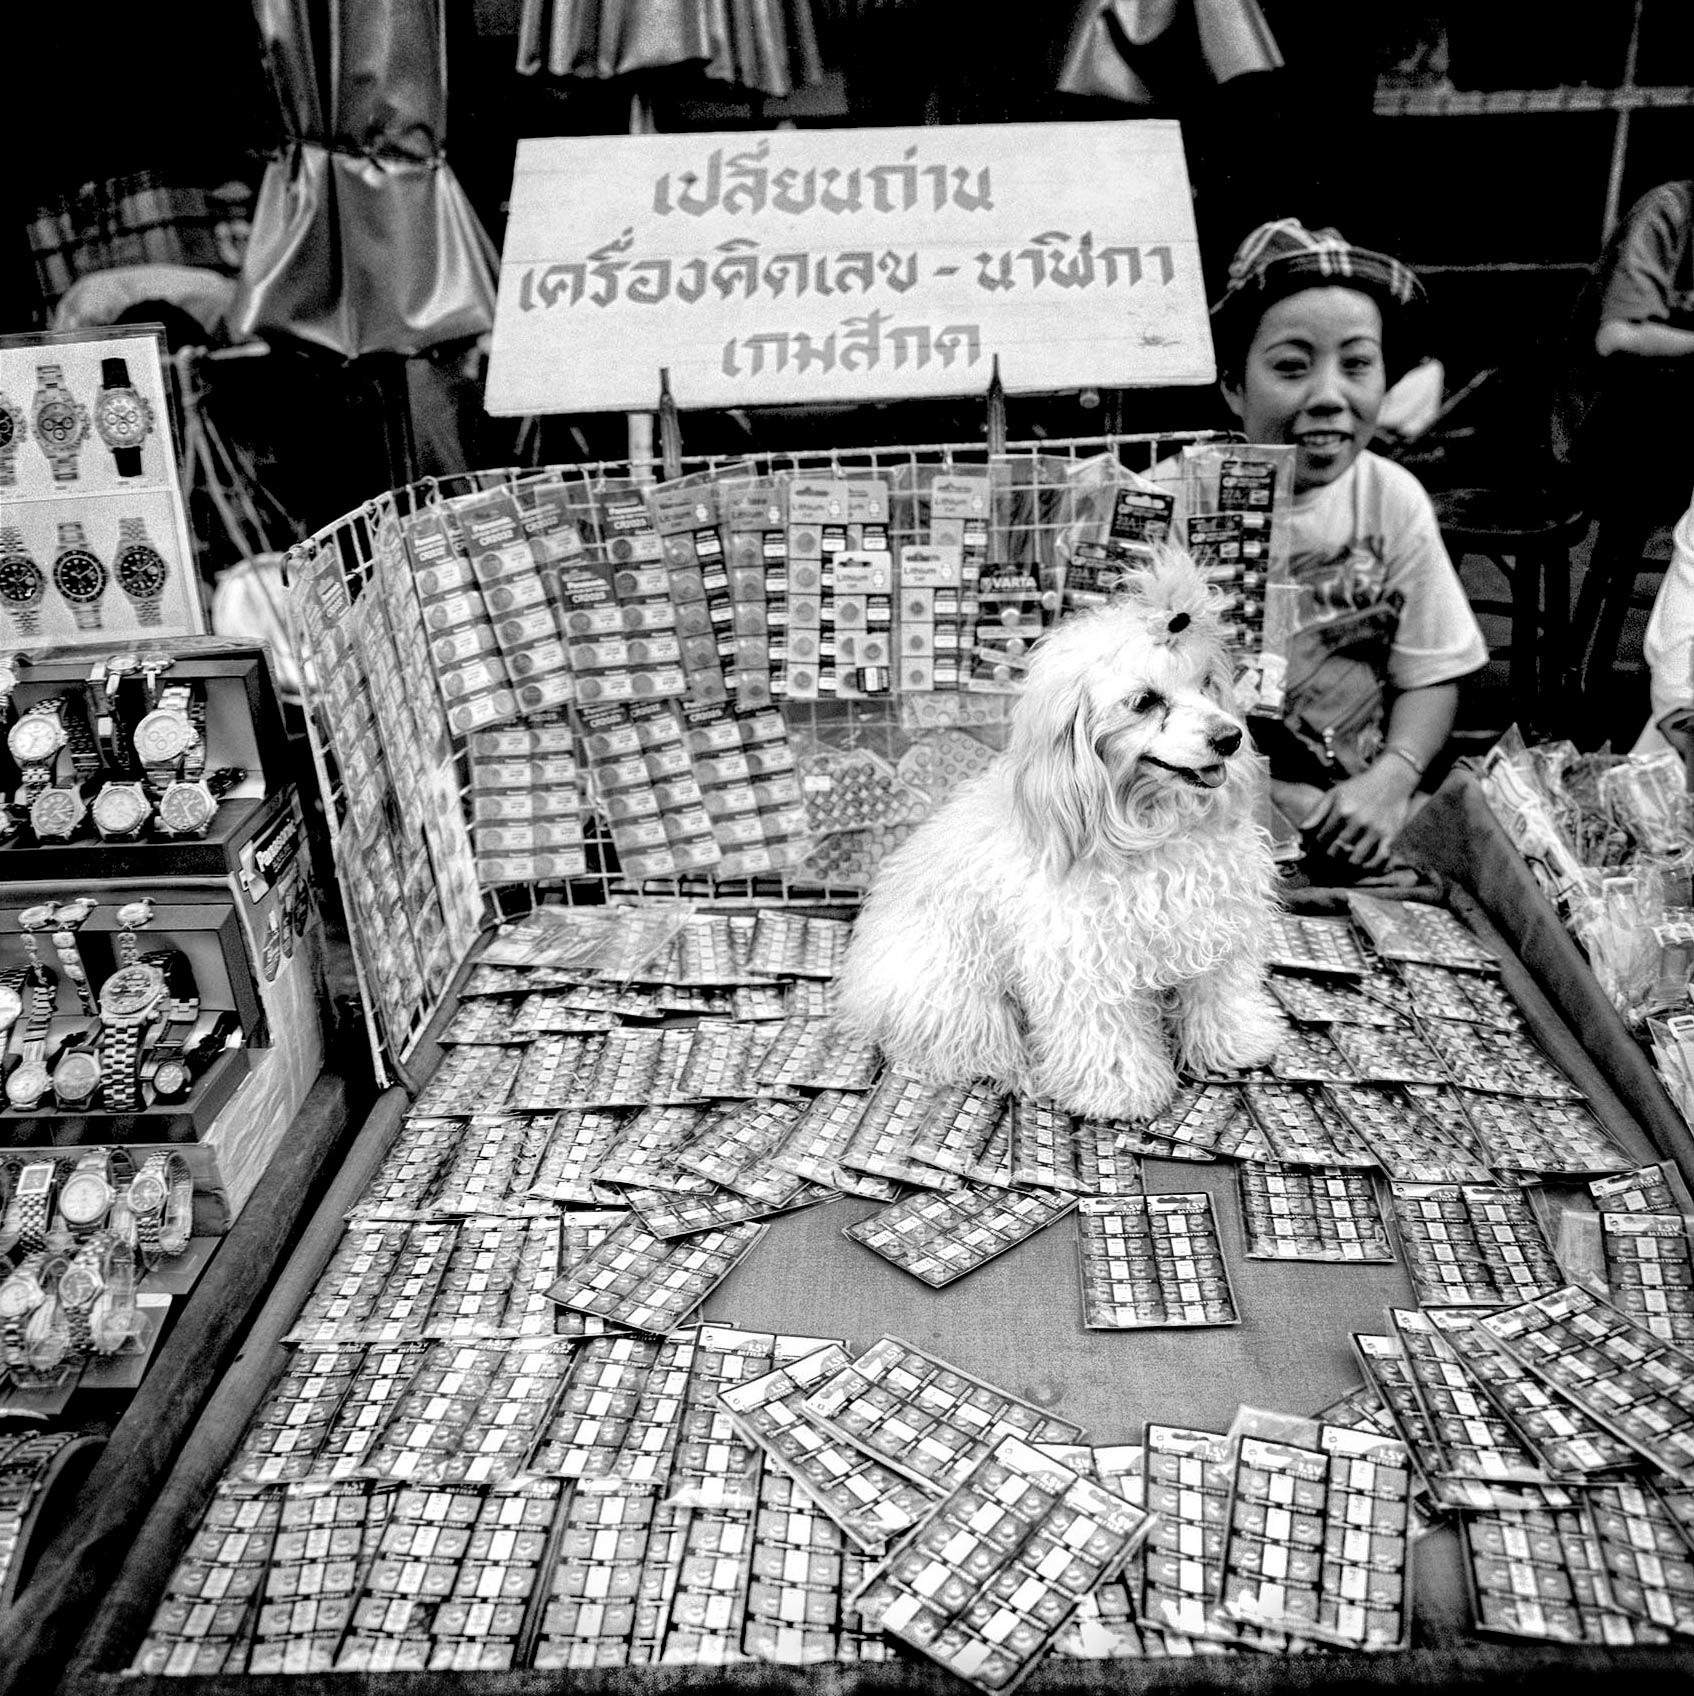 a-womans-pet-poodle-sits-on-a-table-of-lottery-tickets-in-bangkok-thailand